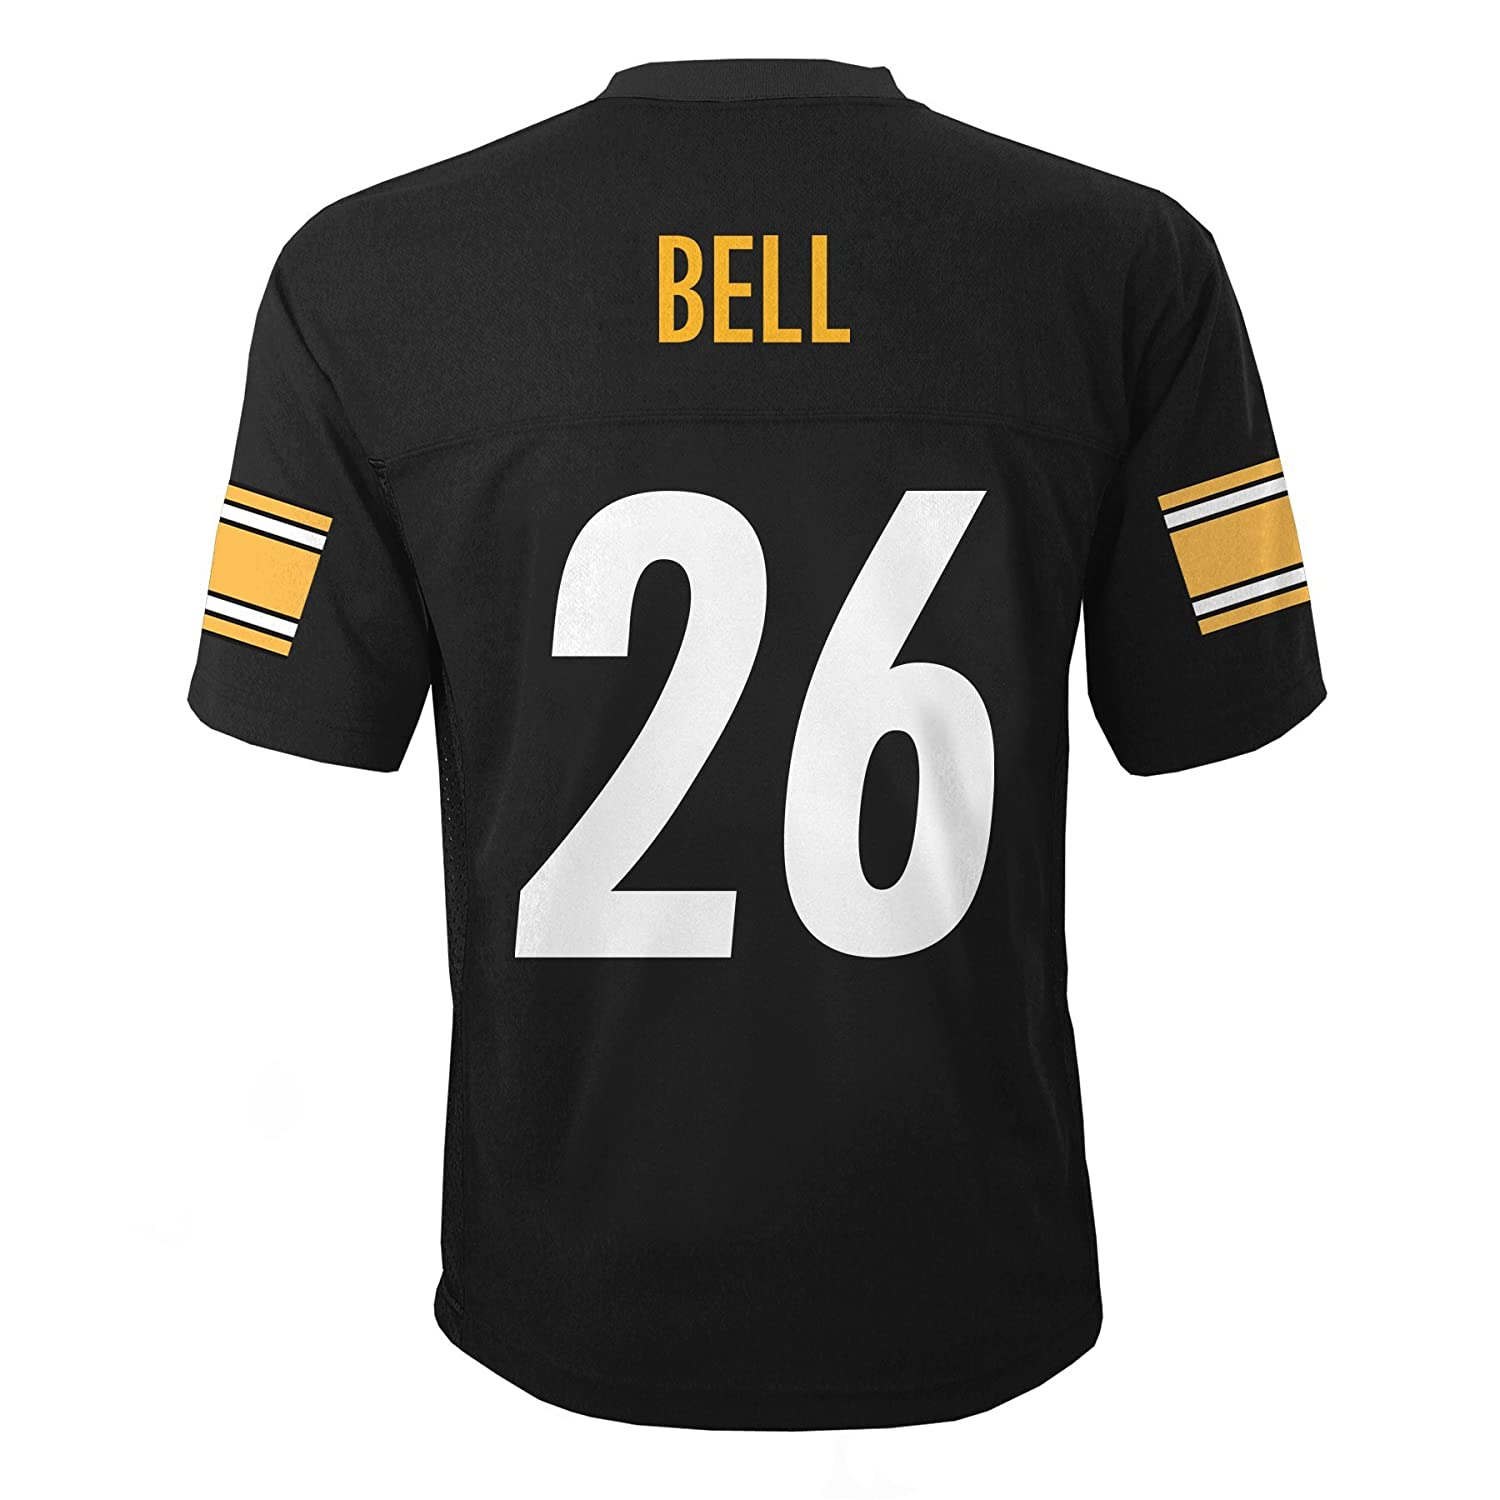 8 Outerstuff NFL Youth Boys 8-20 MID-Tier Jersey TMC Bell L Steelers Black S